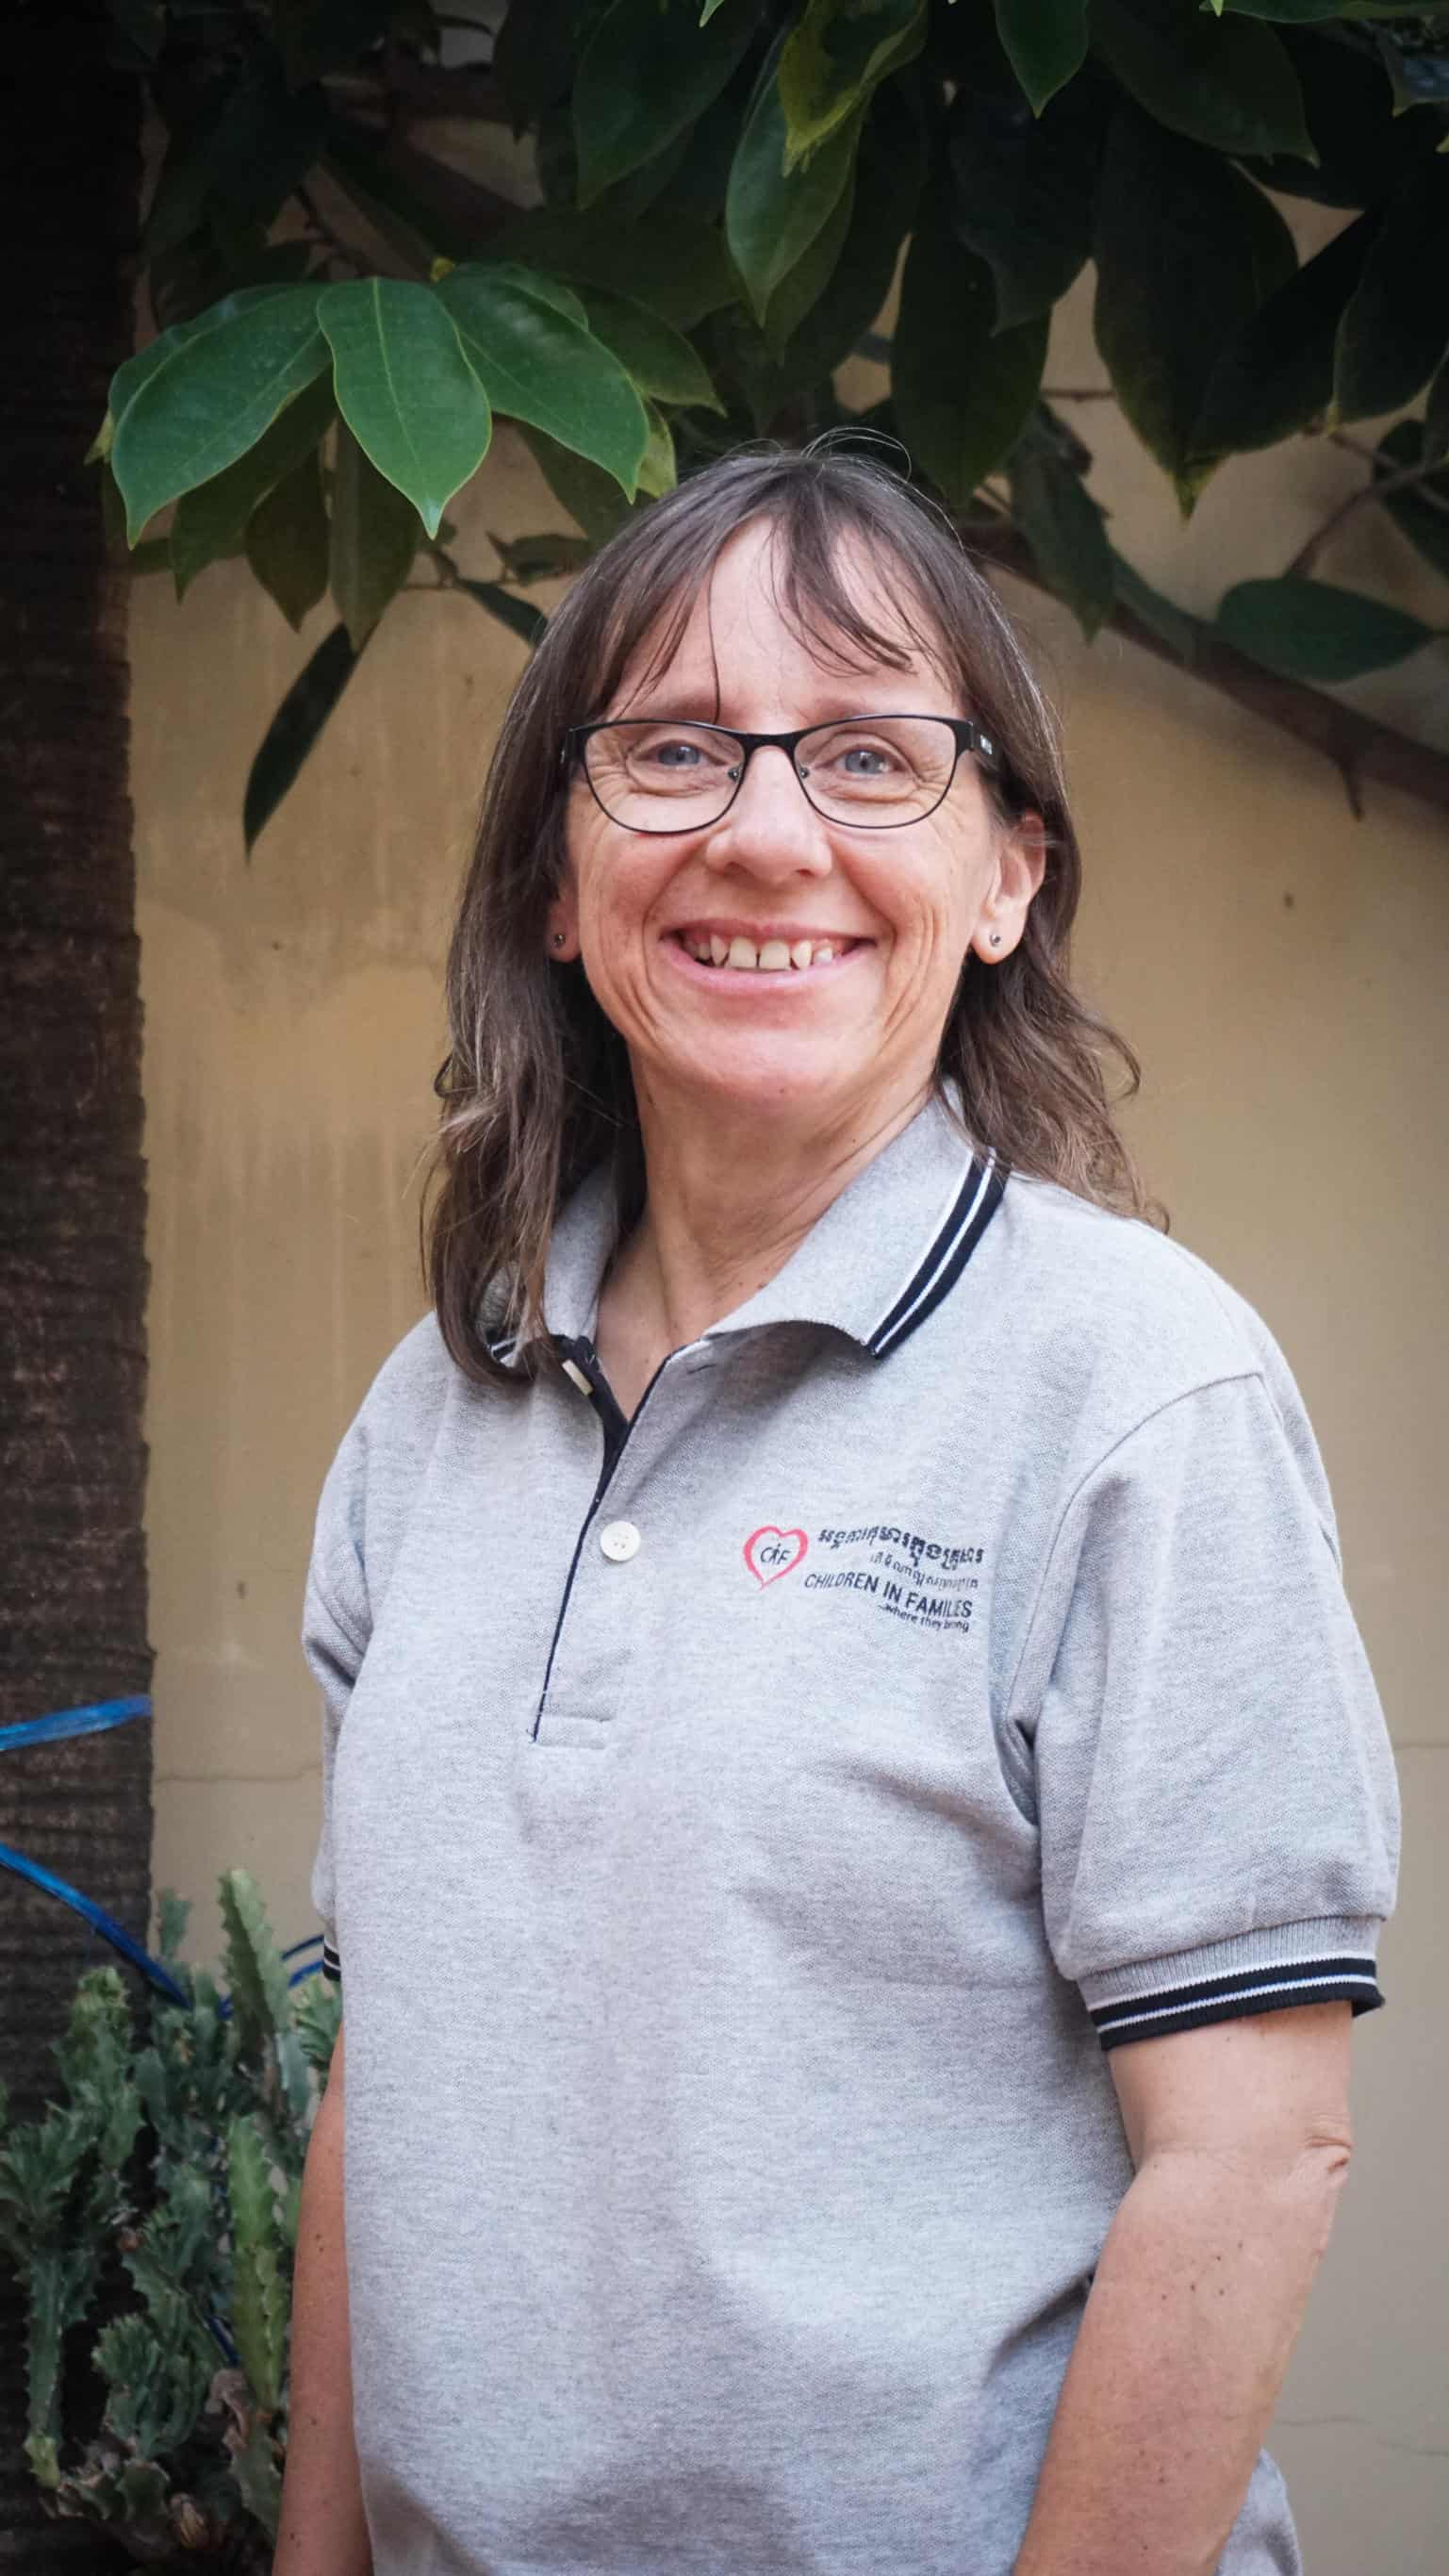 Bridget now volunteers as an educational consultant for CIF